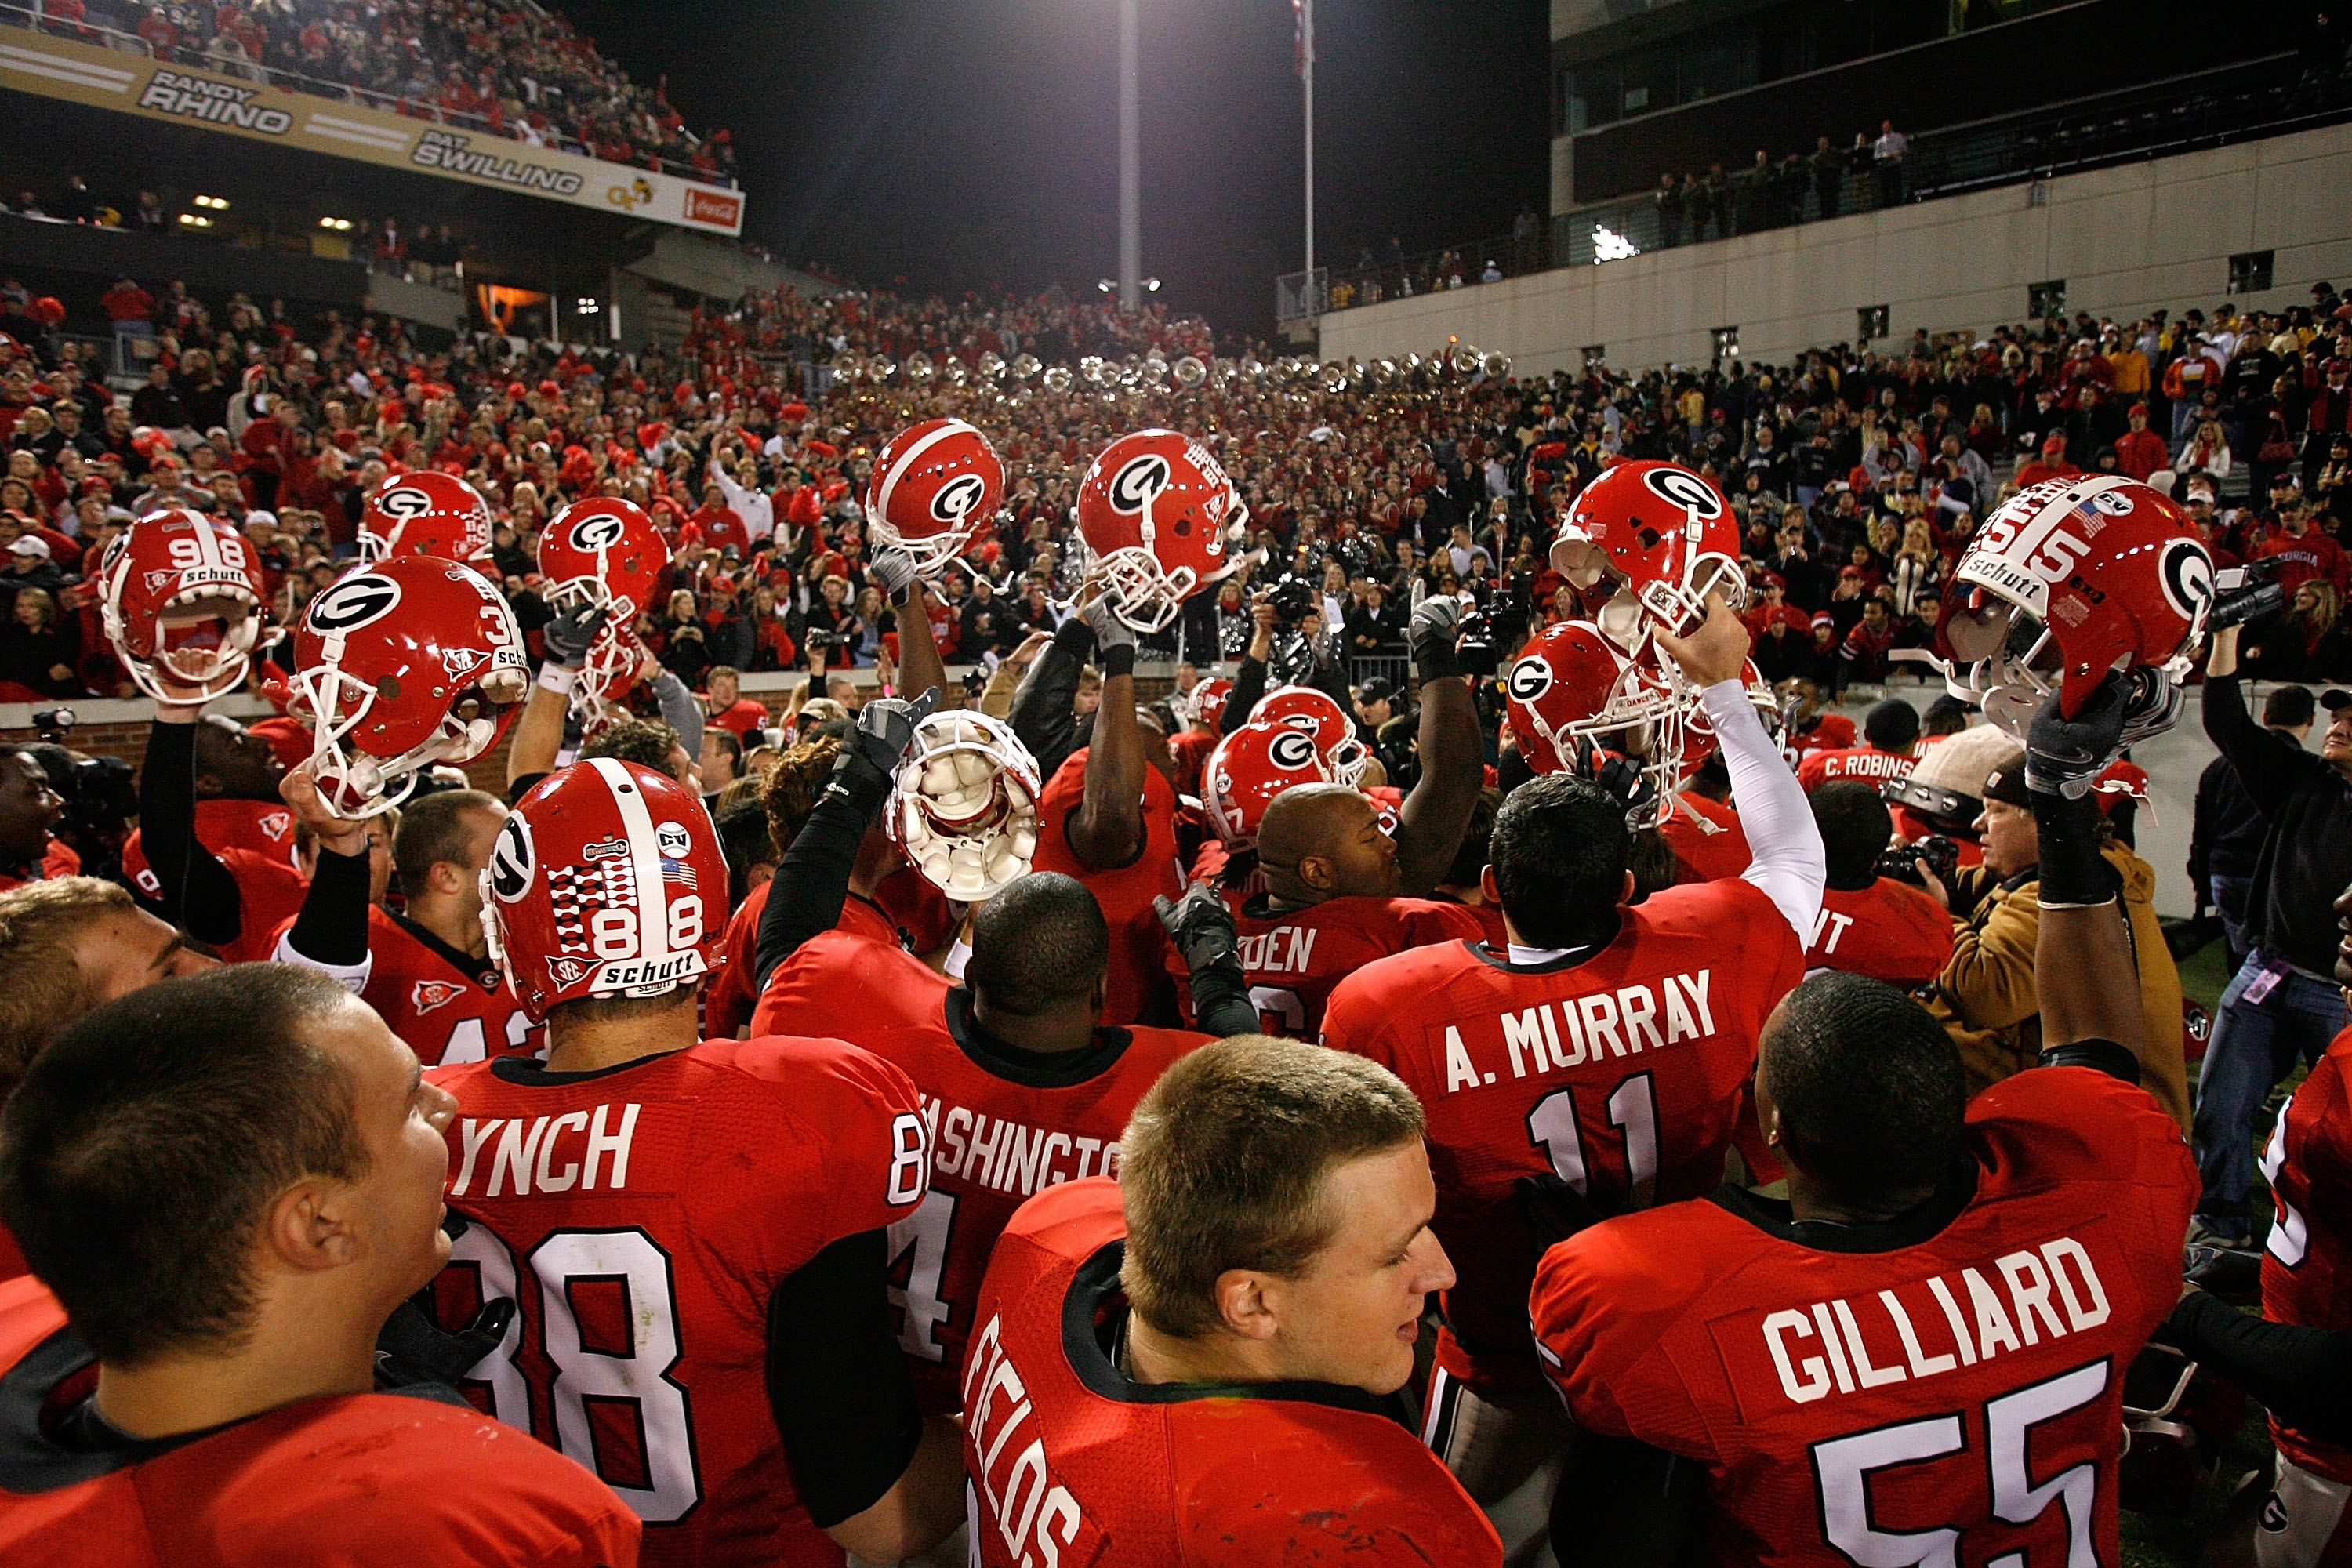 ATLANTA - NOVEMBER 28:  The Georgia Bulldogs celebrate their 30-24 win over the Georgia Tech Yellow Jackets at Bobby Dodd Stadium on November 28, 2009 in Atlanta, Georgia.  (Photo by Kevin C. Cox/Getty Images)